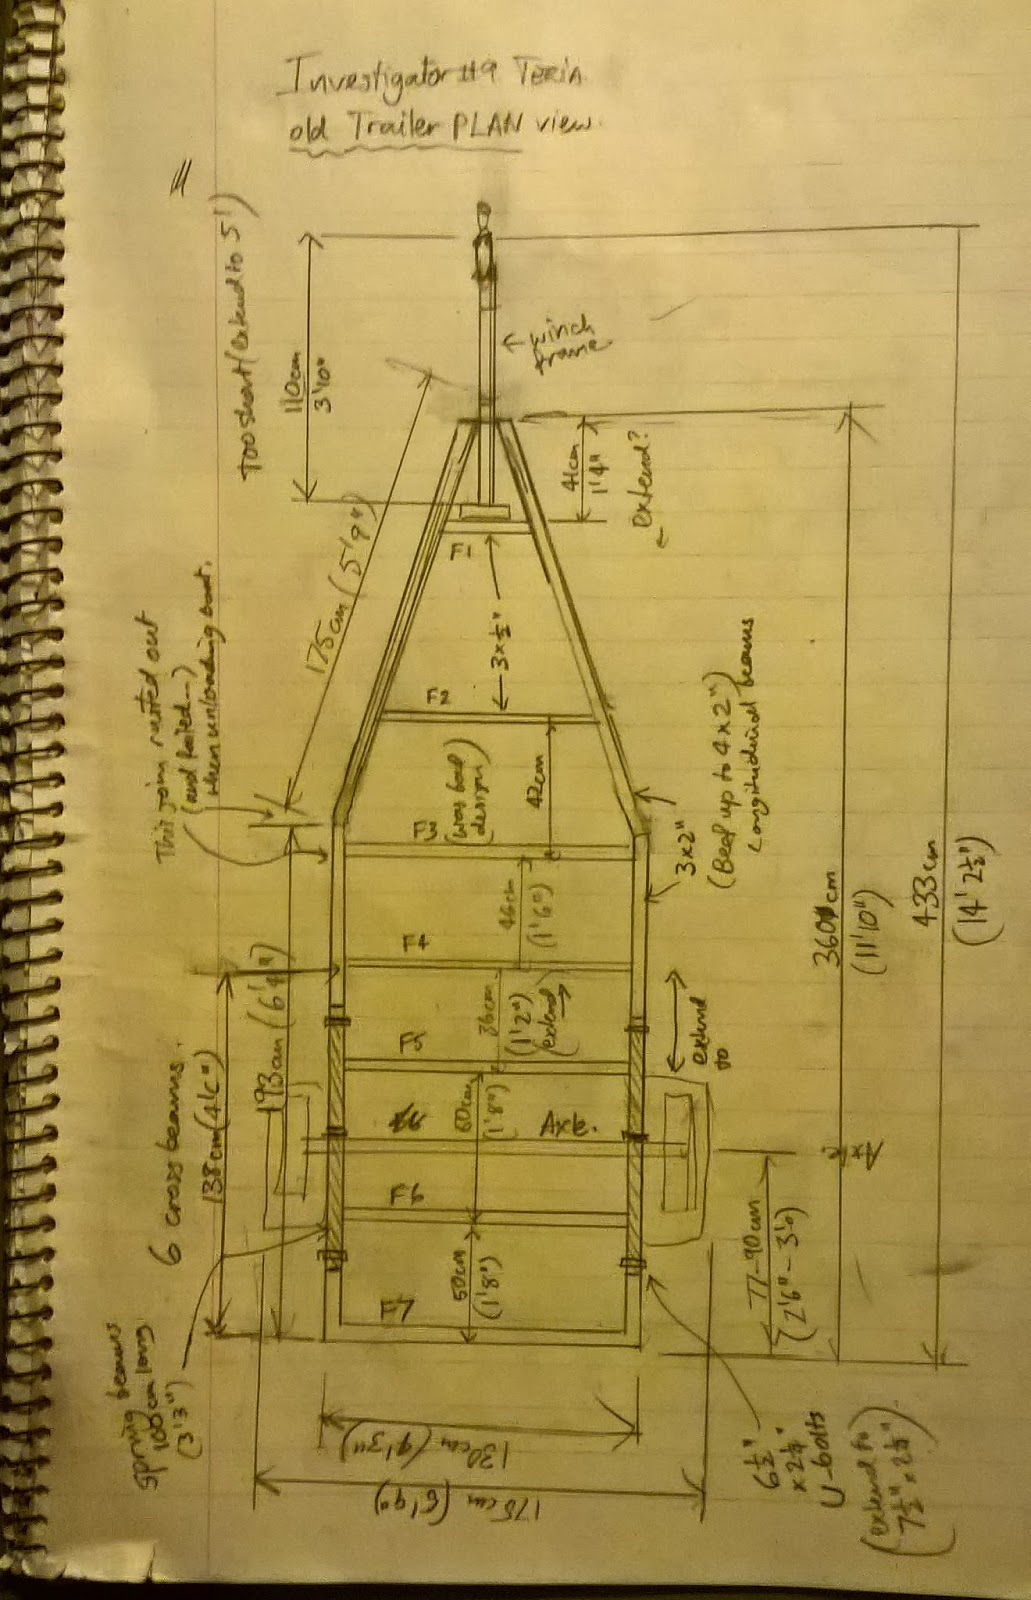 Trailer Frame Diagram Data Schema Utility Trailer Wiring Harness Diagram Waterways Rebuild 2 Stripping It Down Rh Teria563 Blogspot Com Wiring Harness Mallard 1970